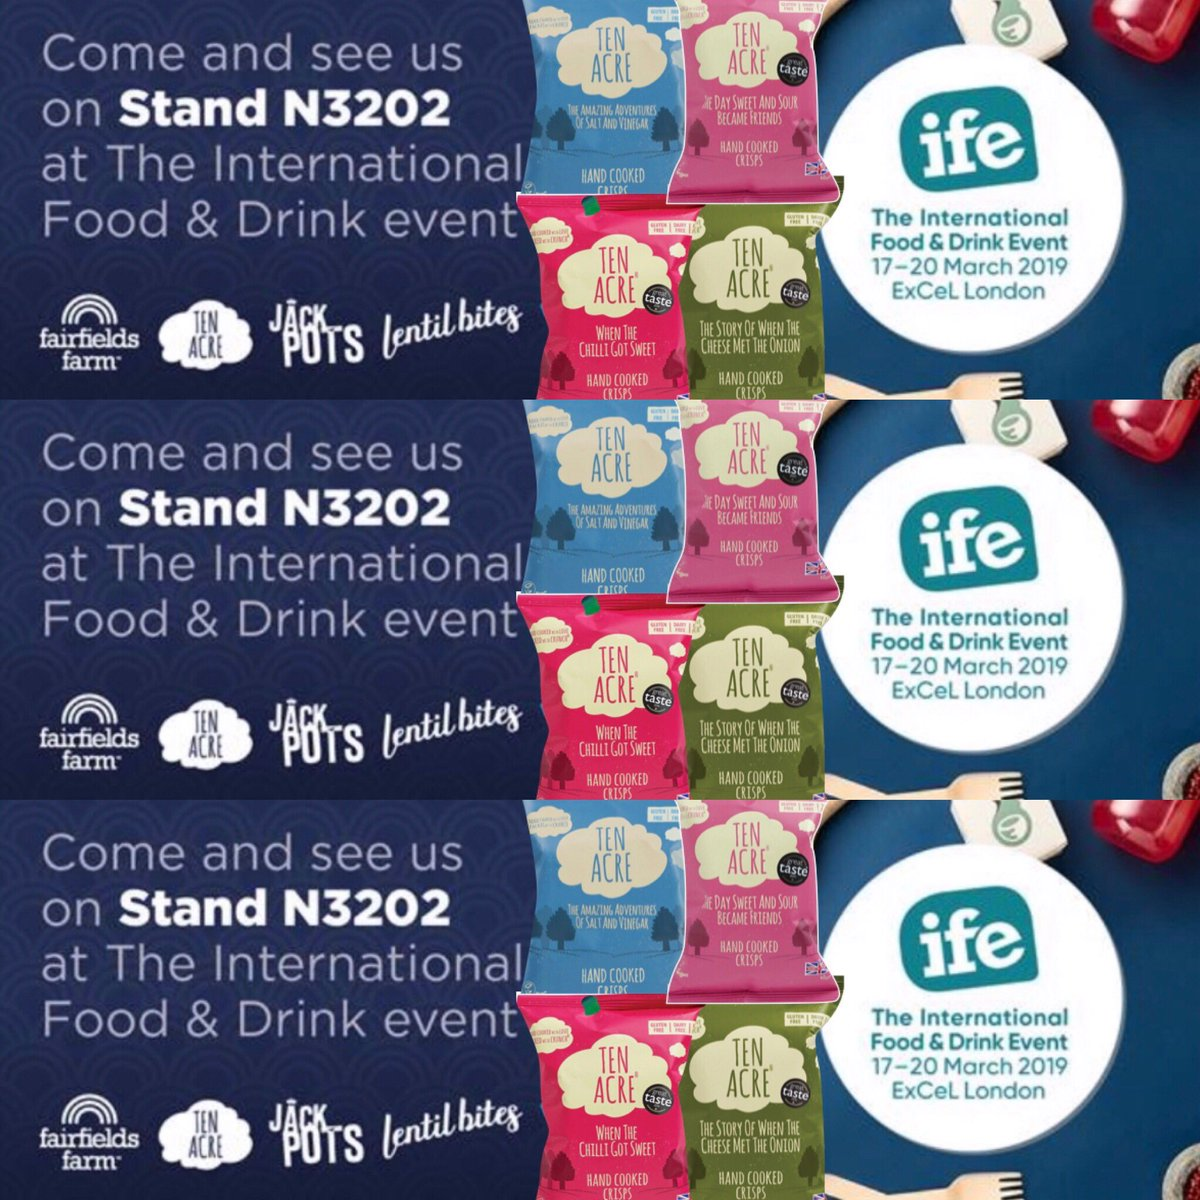 Come and see us at @IFE_Event @ExCeLLondon opens 11am today stand N3202 #ife19 #excellondon